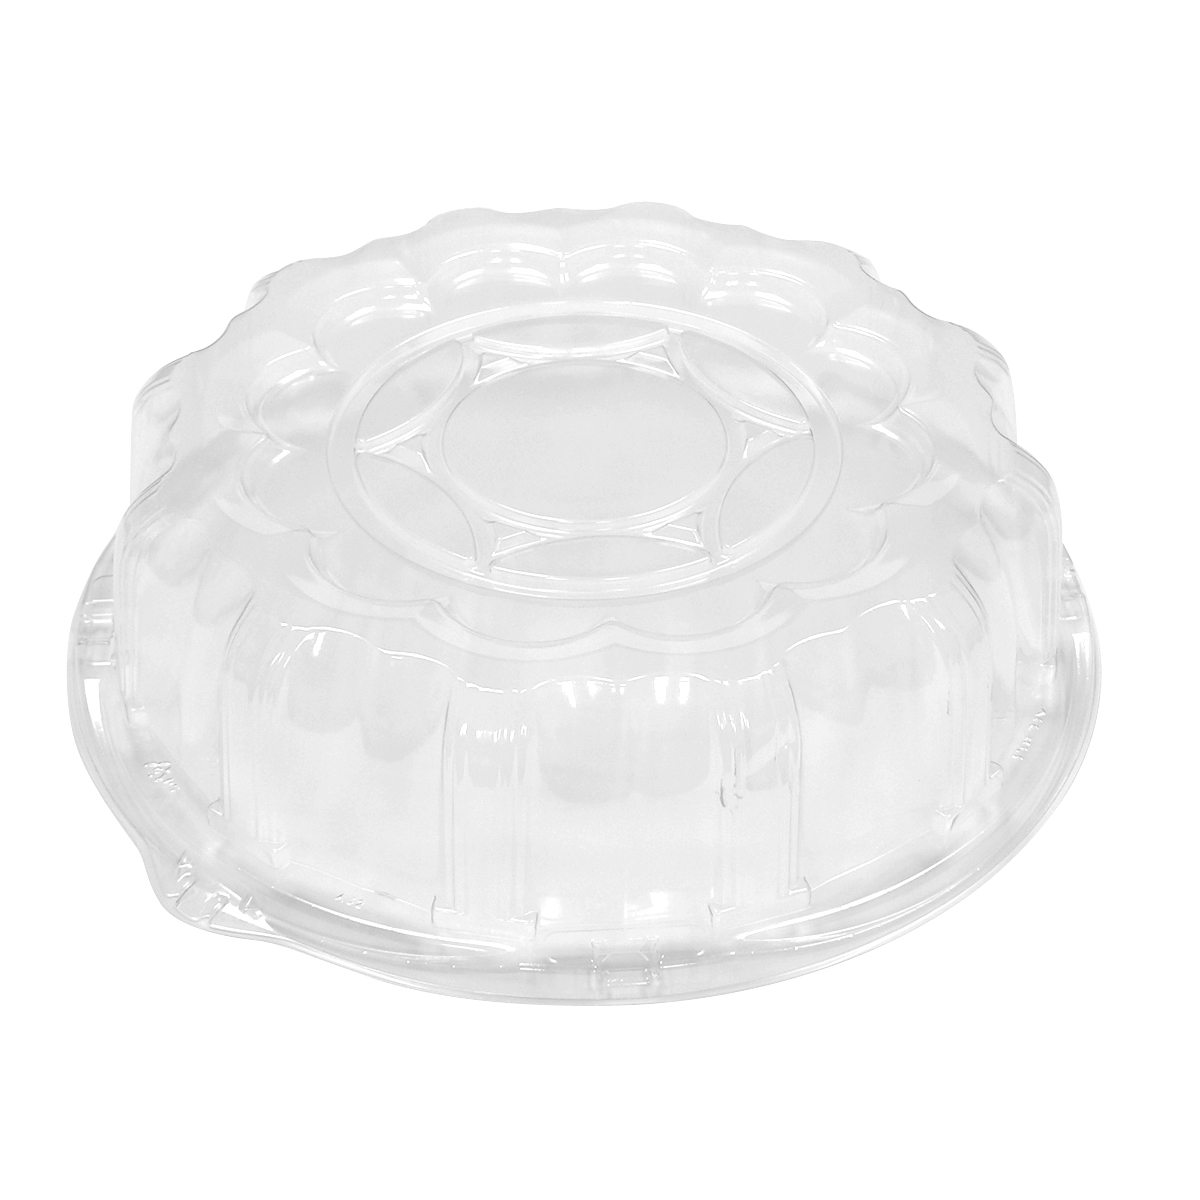 "18-310081 - Pactiv P9812 Clear Plastic 12"" Dome Lid 50ct"